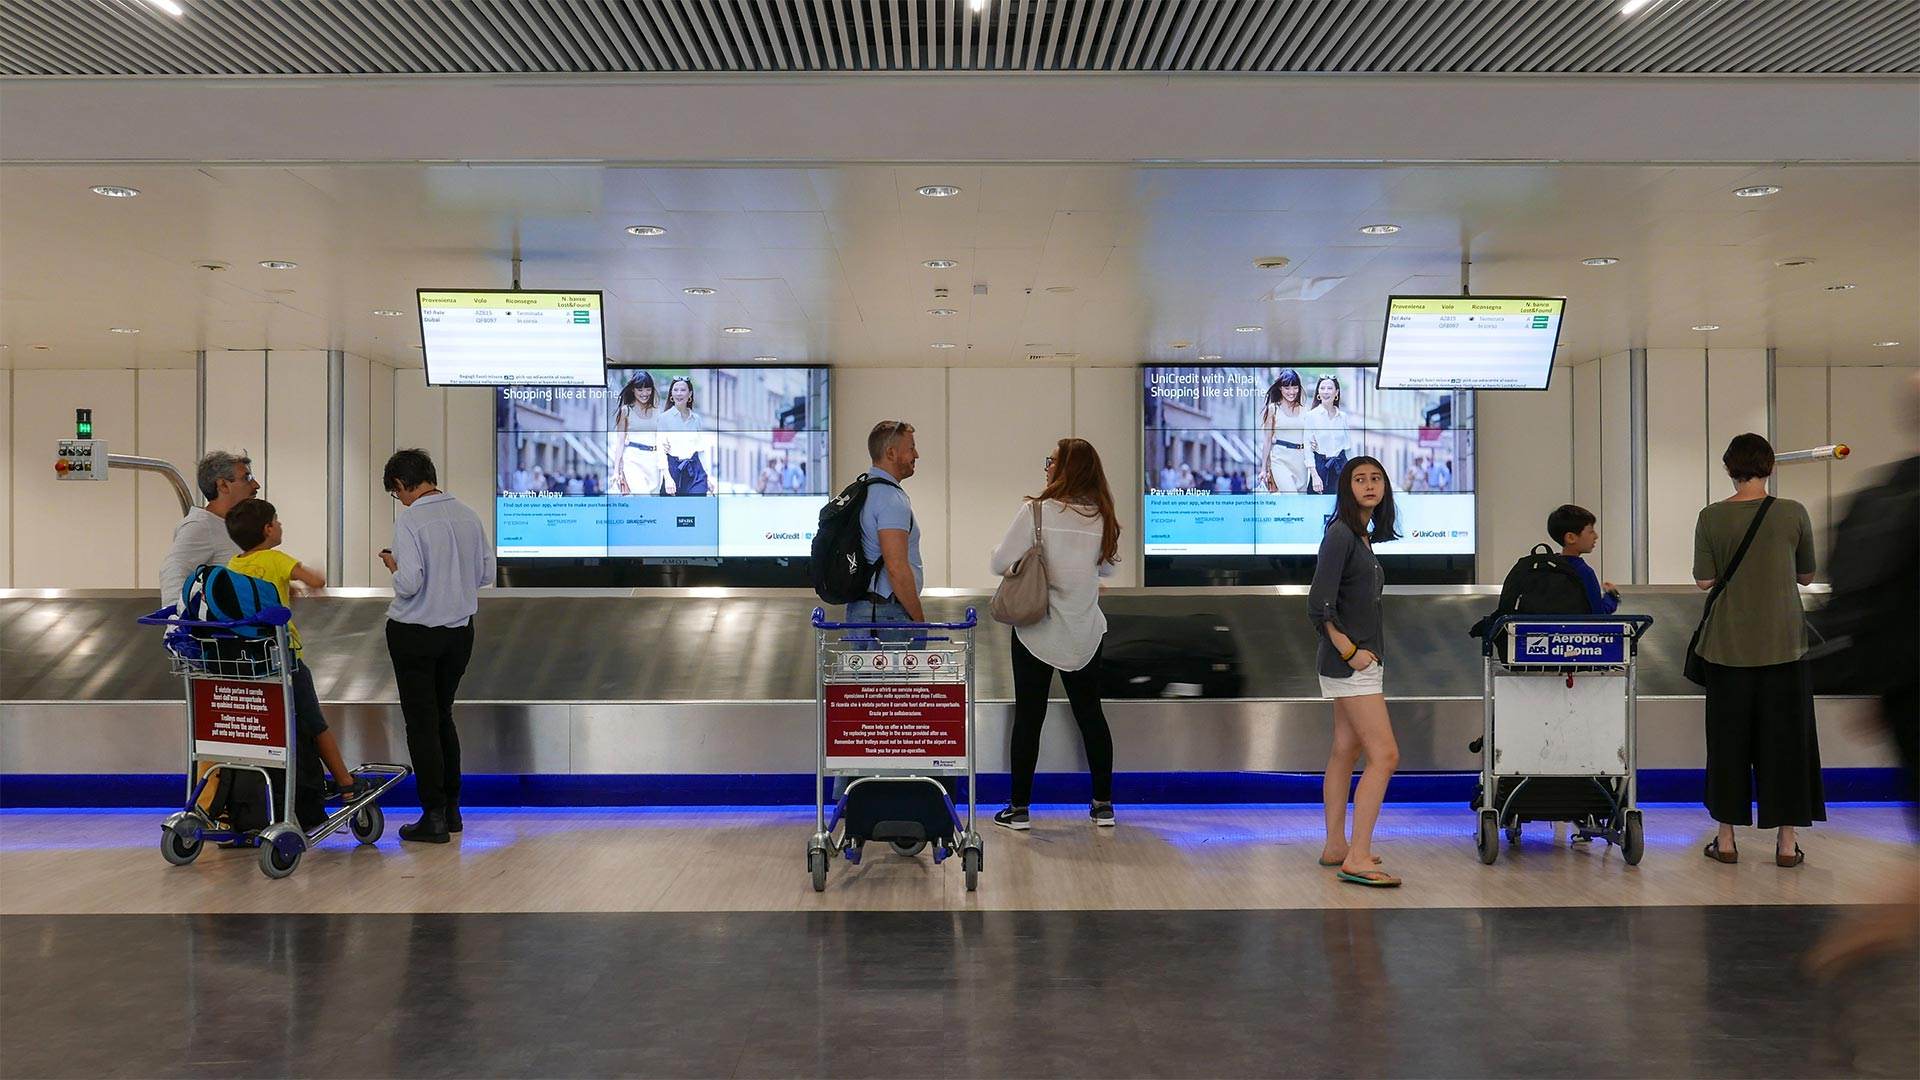 Monitors and digital signage in airport